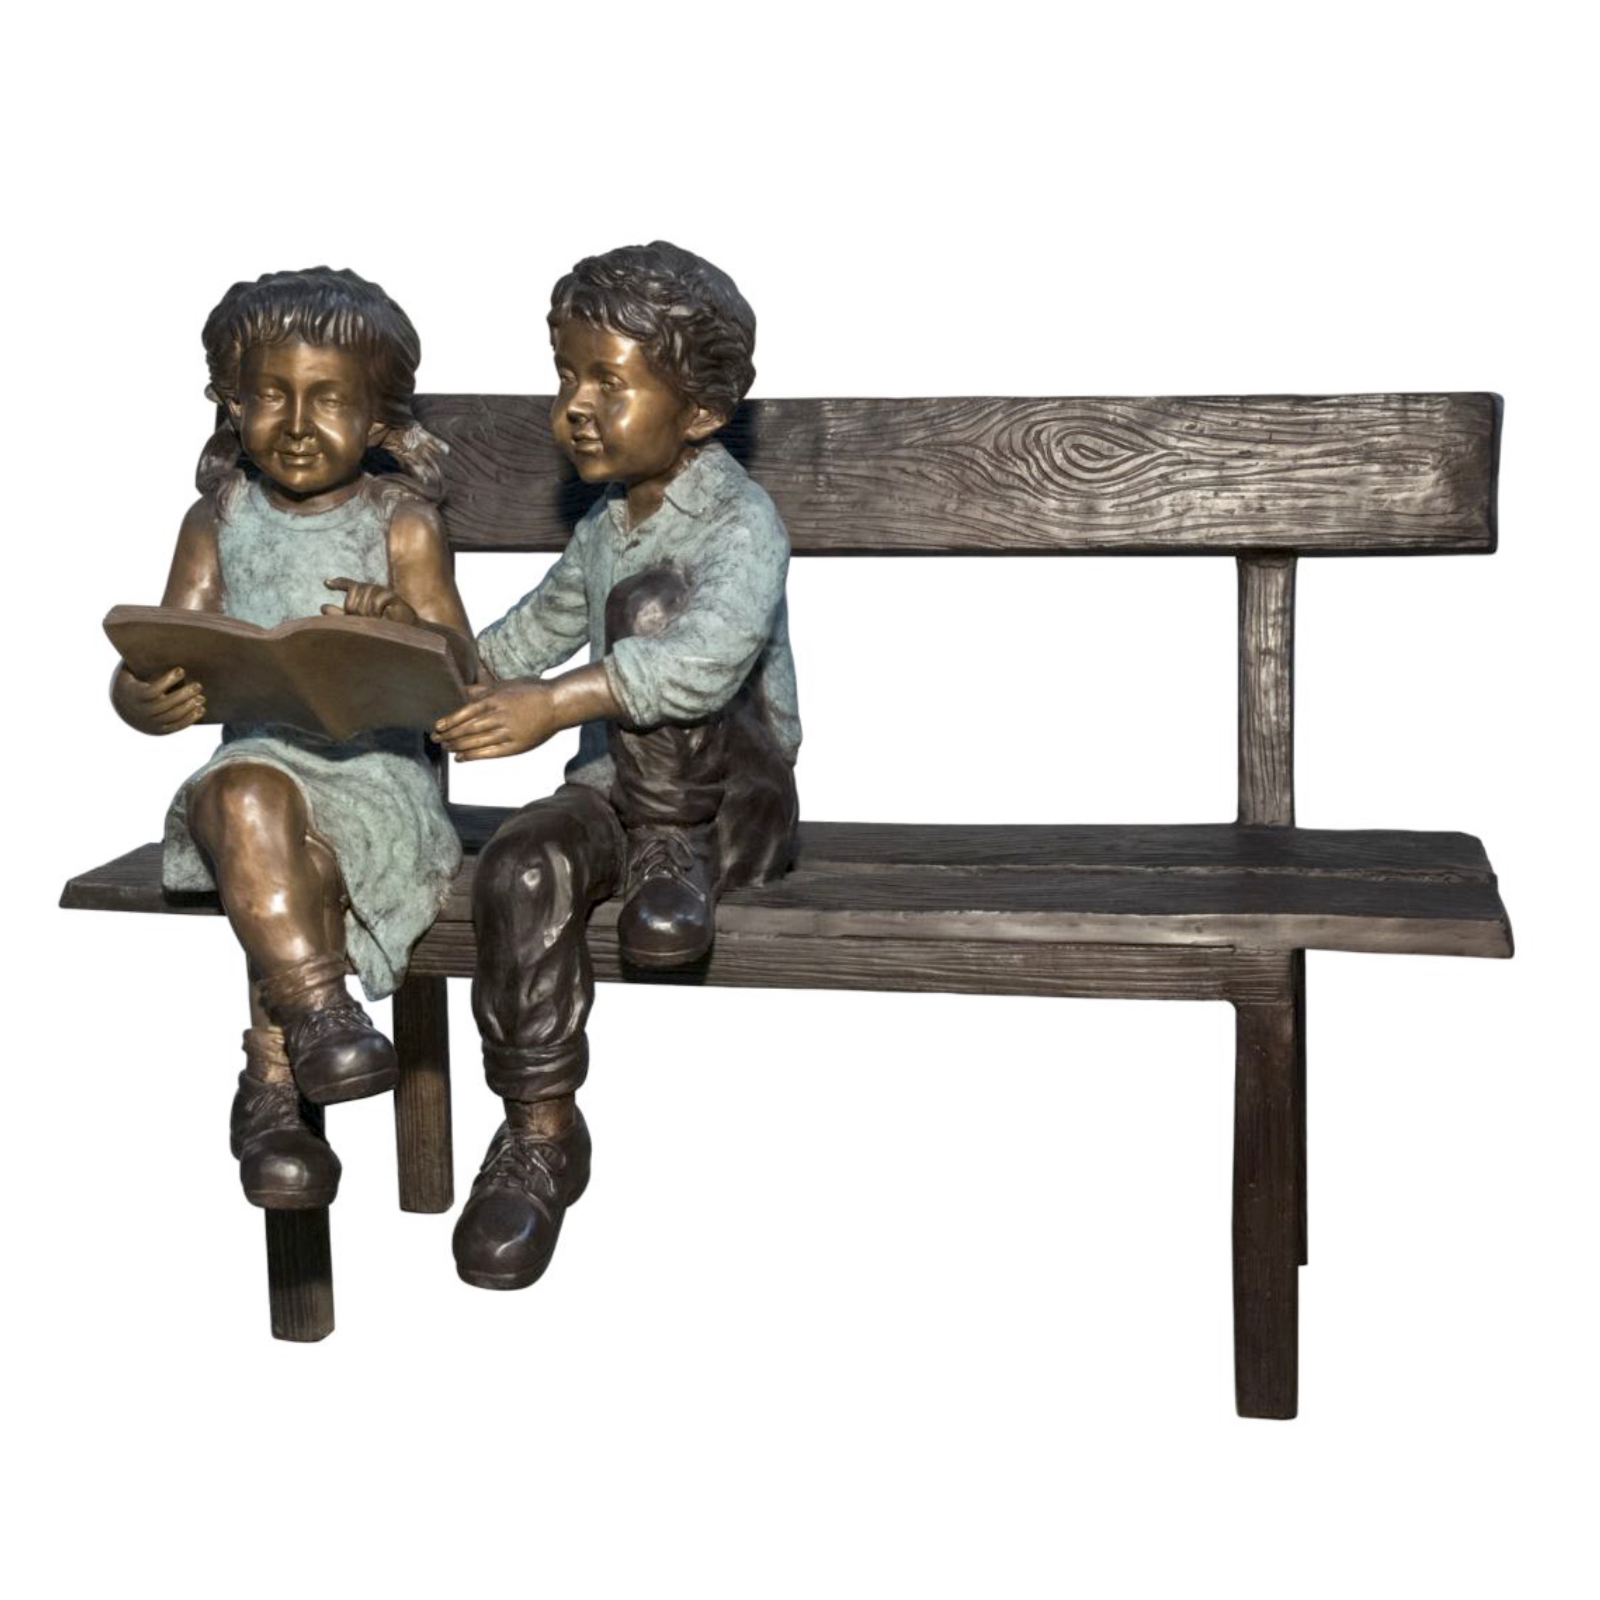 library res students section reading med descriptionbookmark bench digital this ark on recitation